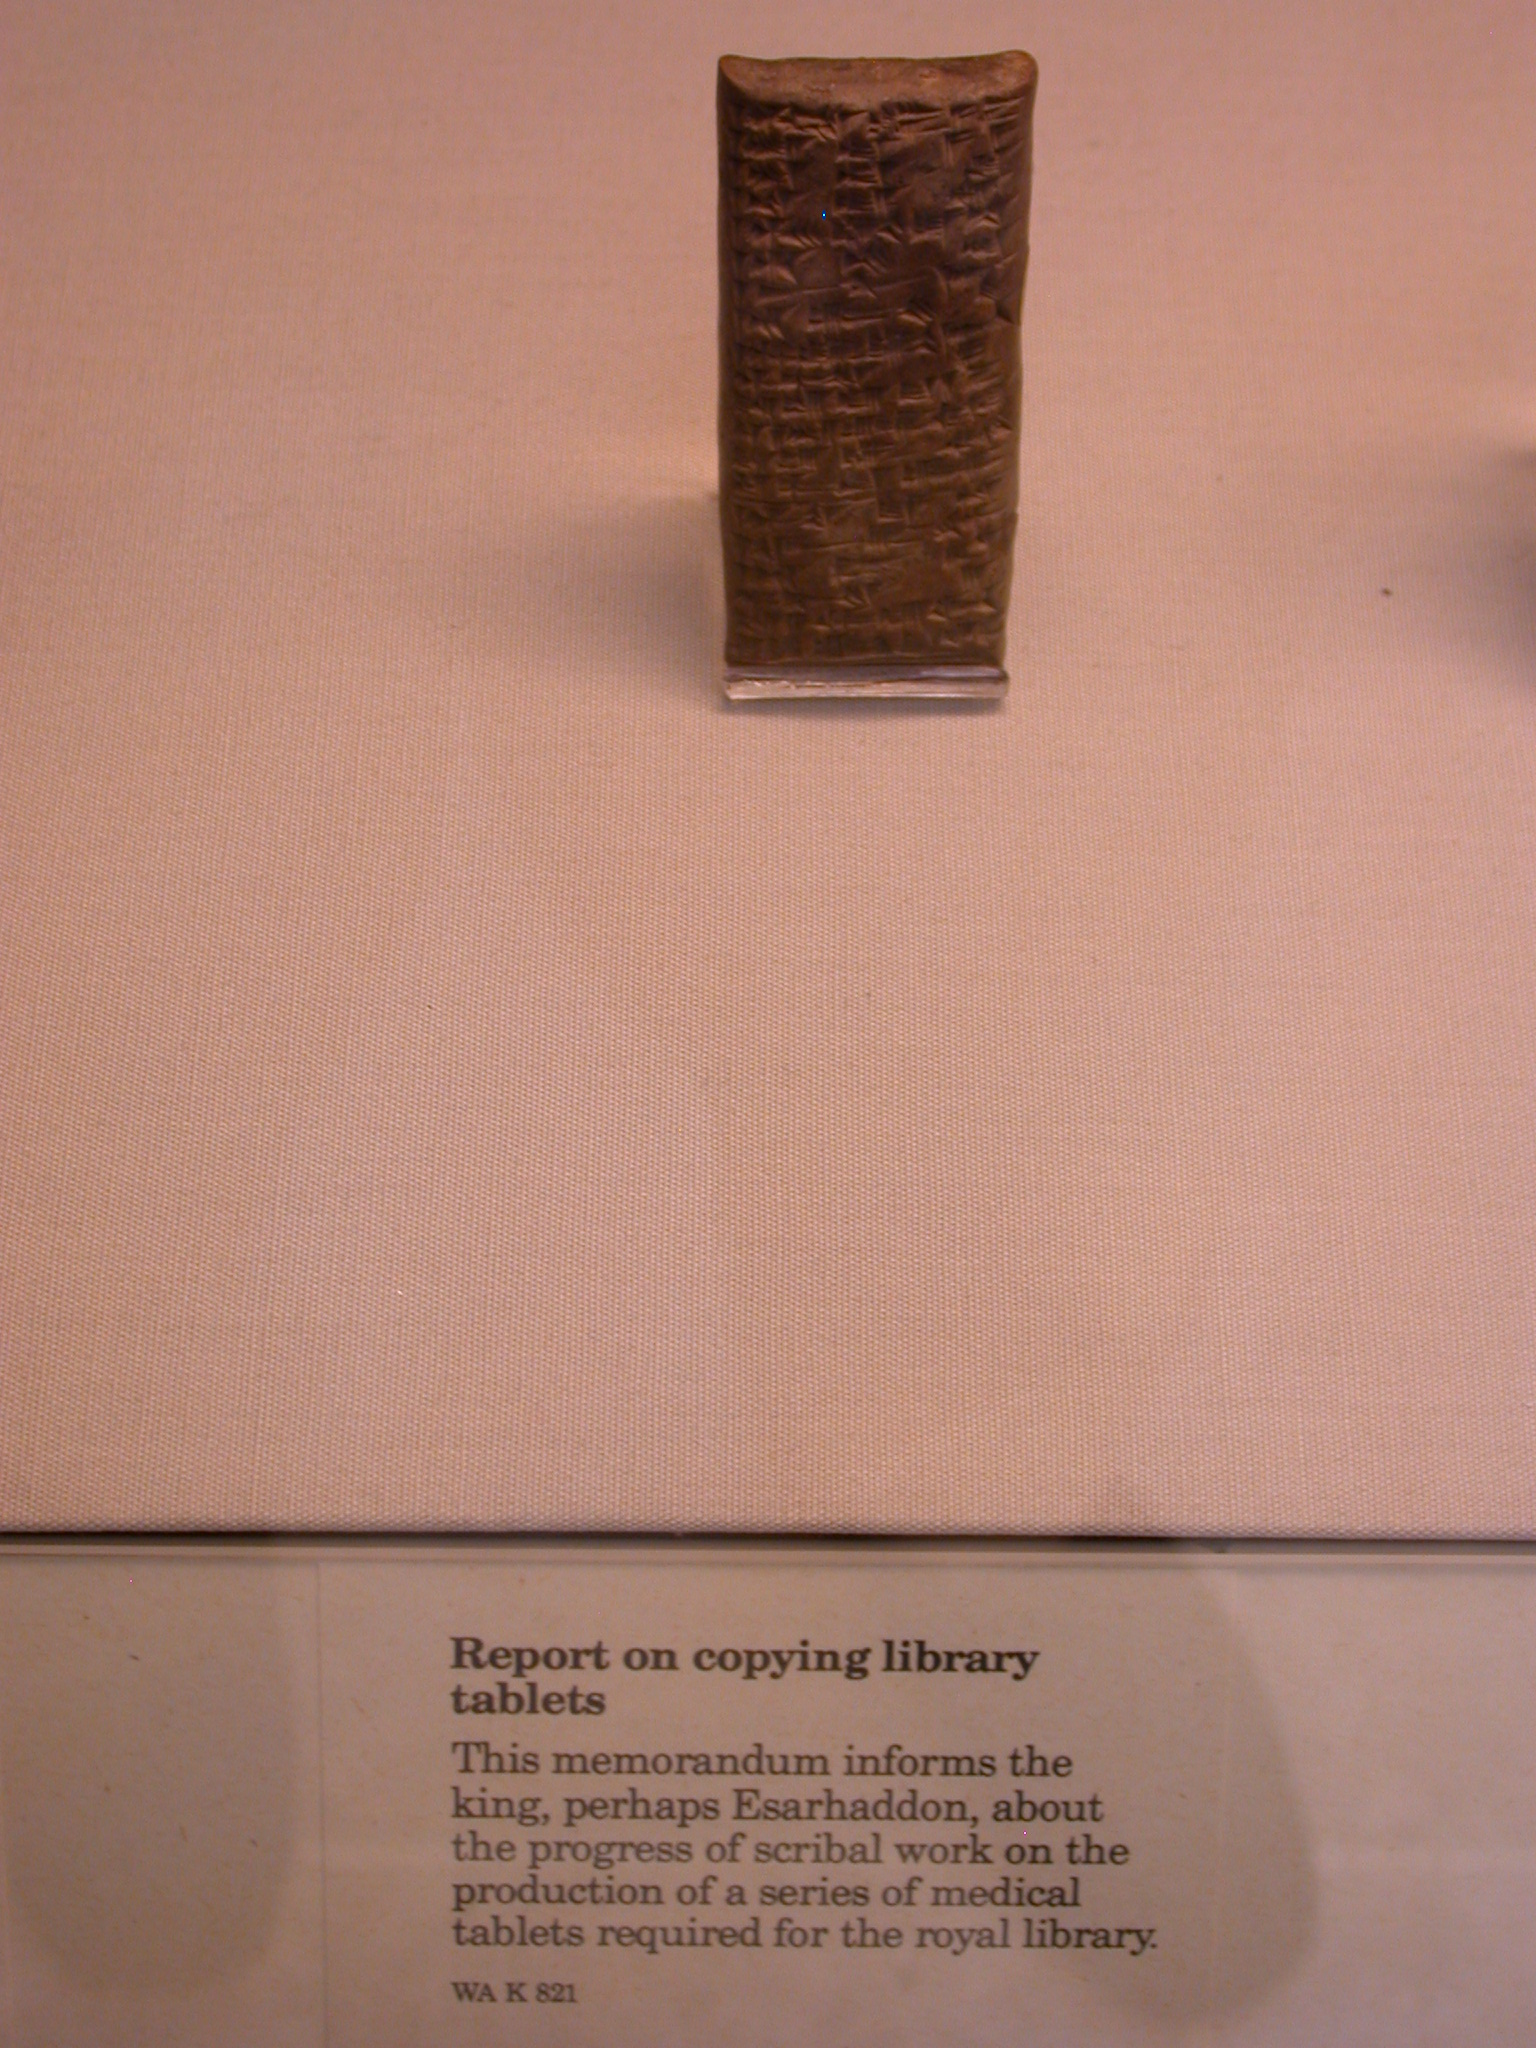 Report on Copying Library Tablets for Medical Library, Cuneiform Tablet, Assyria, in British Museum, London, England